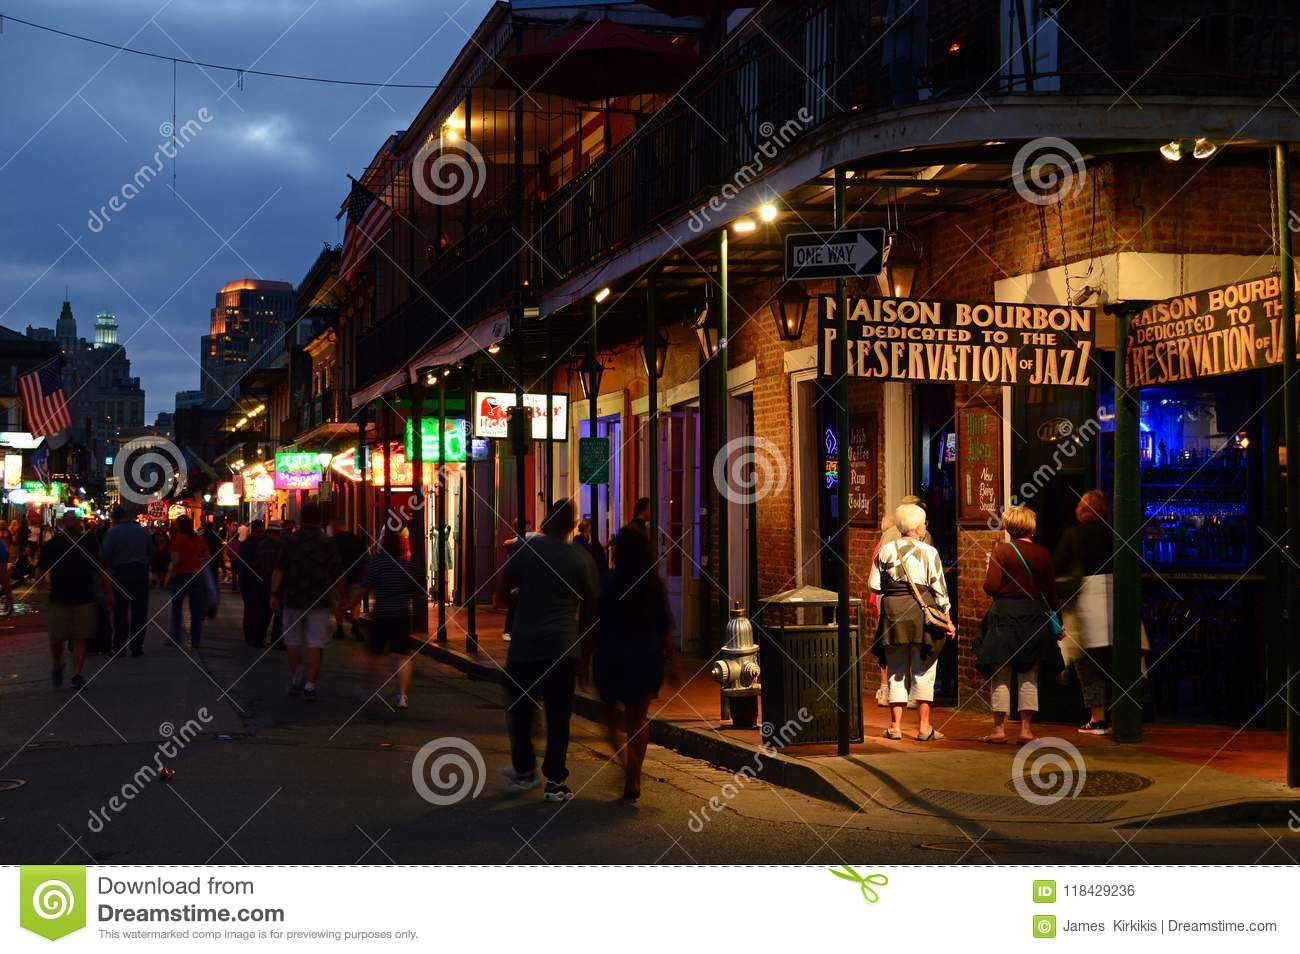 Maison bourbon a classic new orleans jazz club in the french quarter